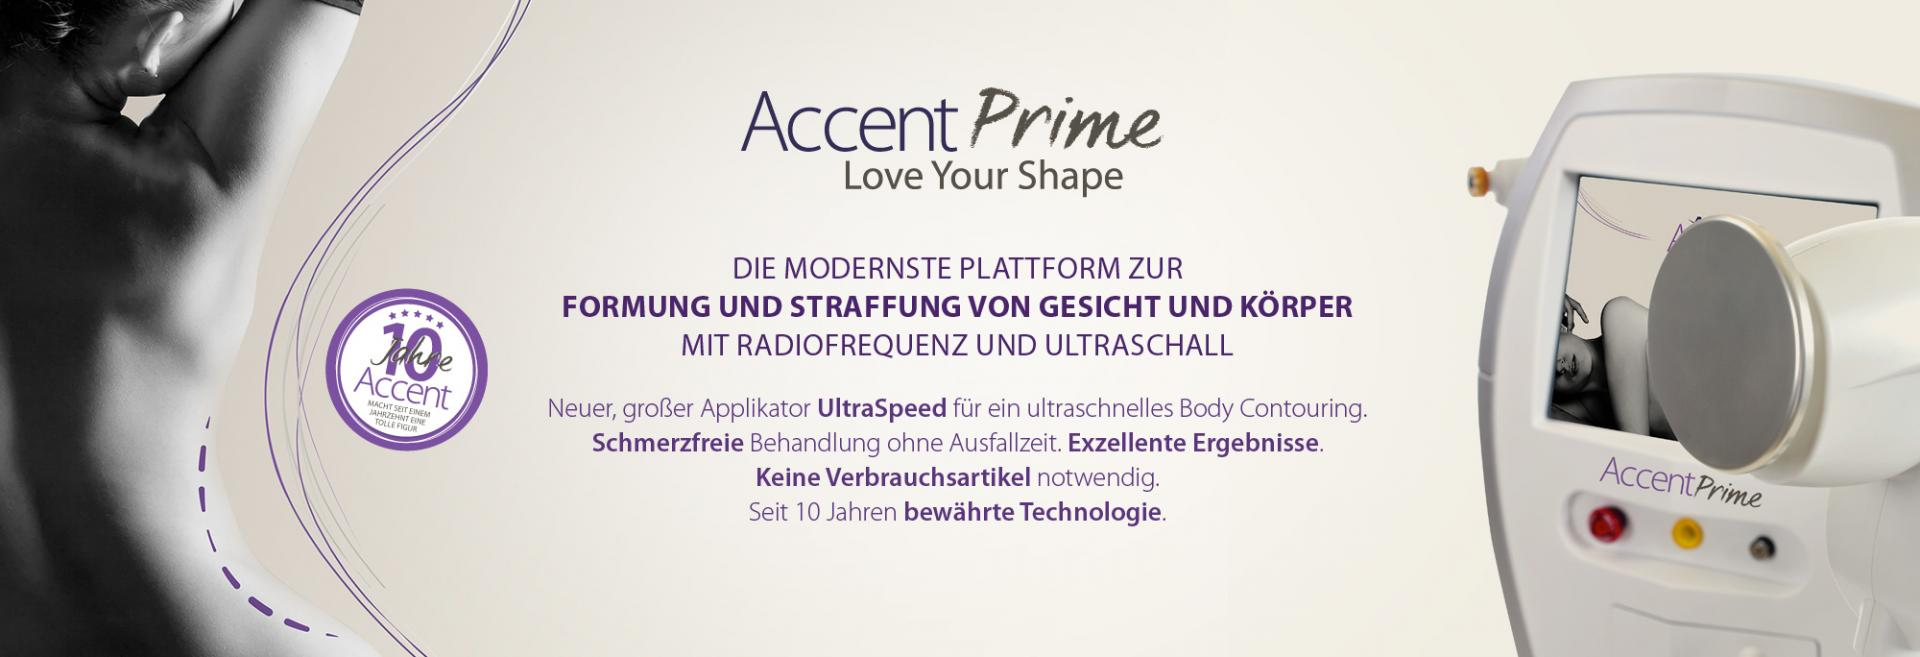 banner-accent-prime2_deutsch2